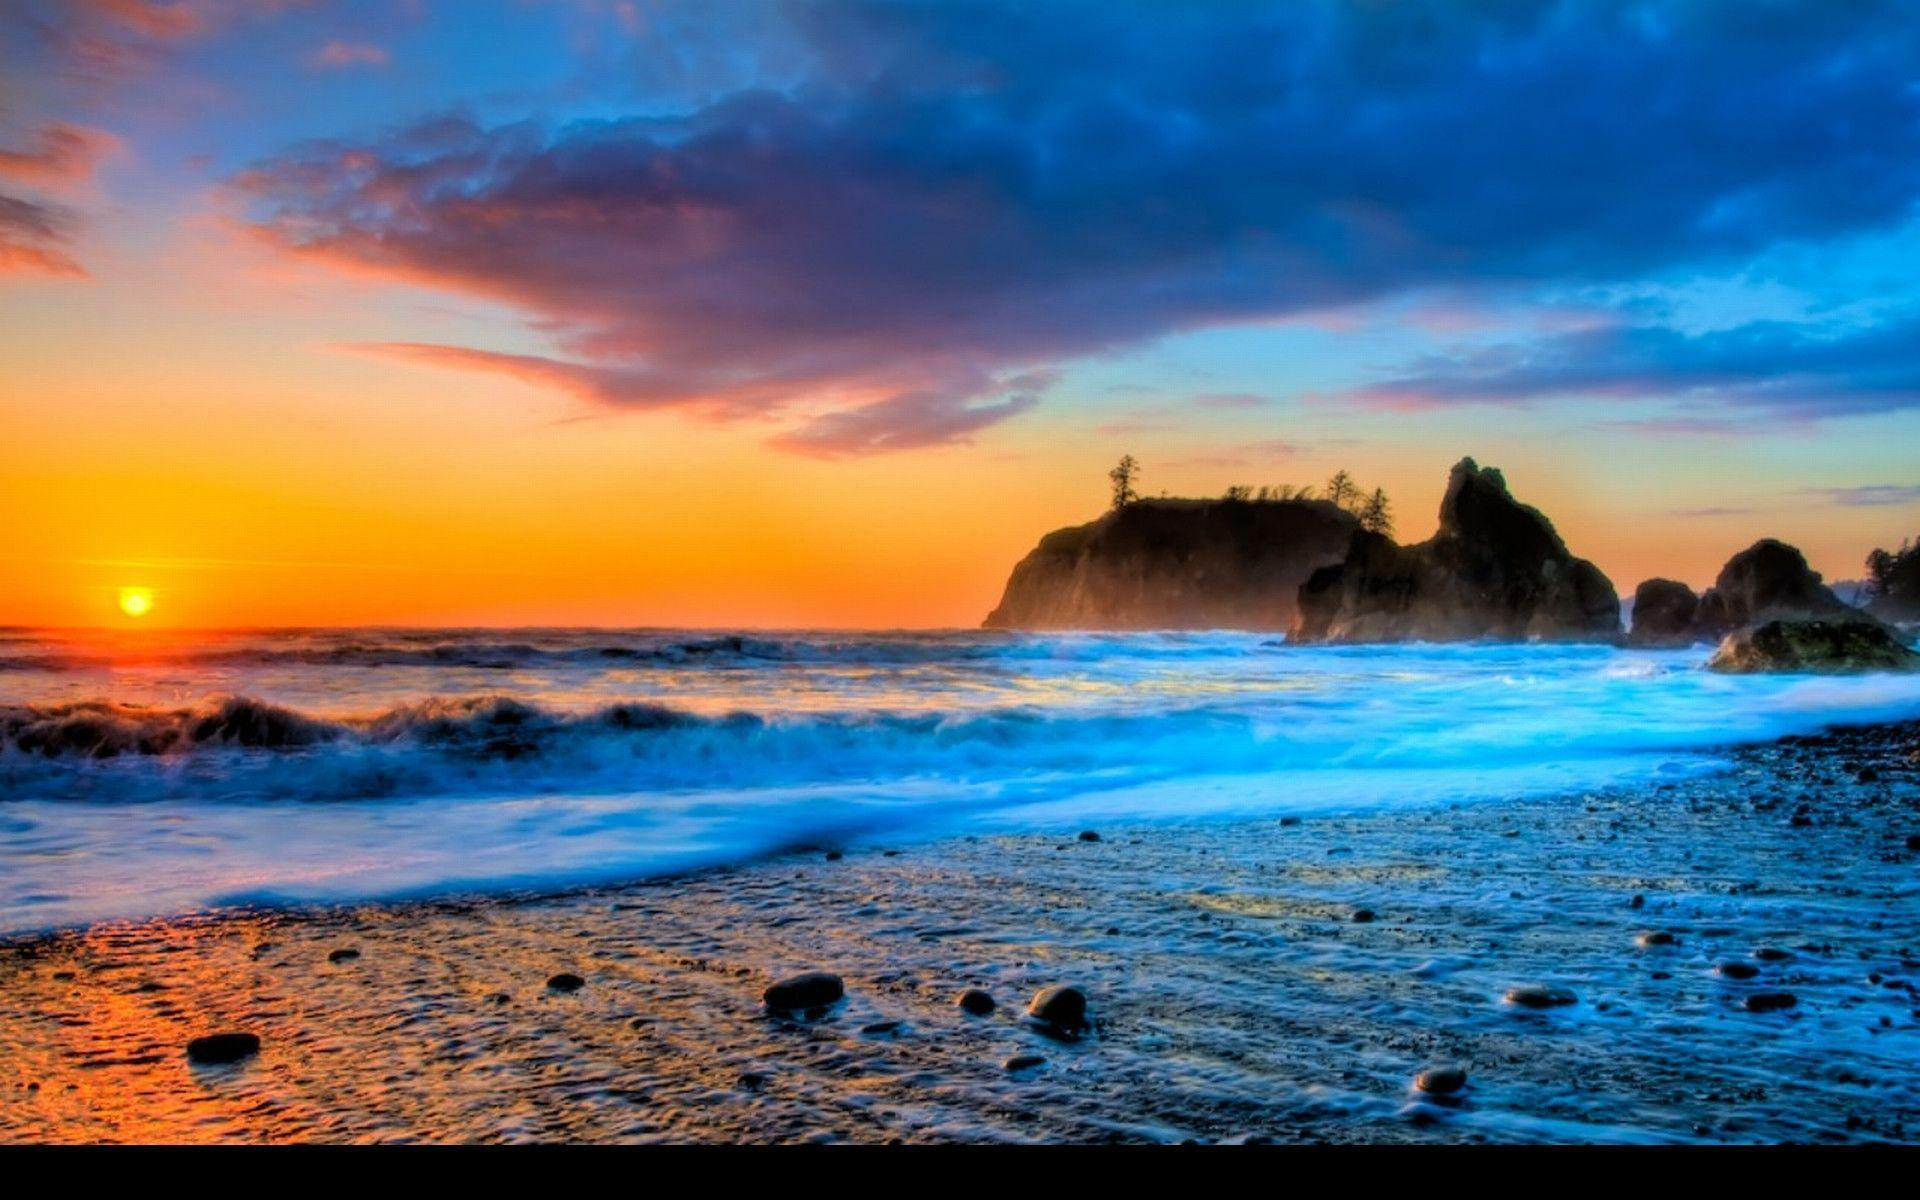 Sunset Beach Wallpapers - Wallpaper Cave